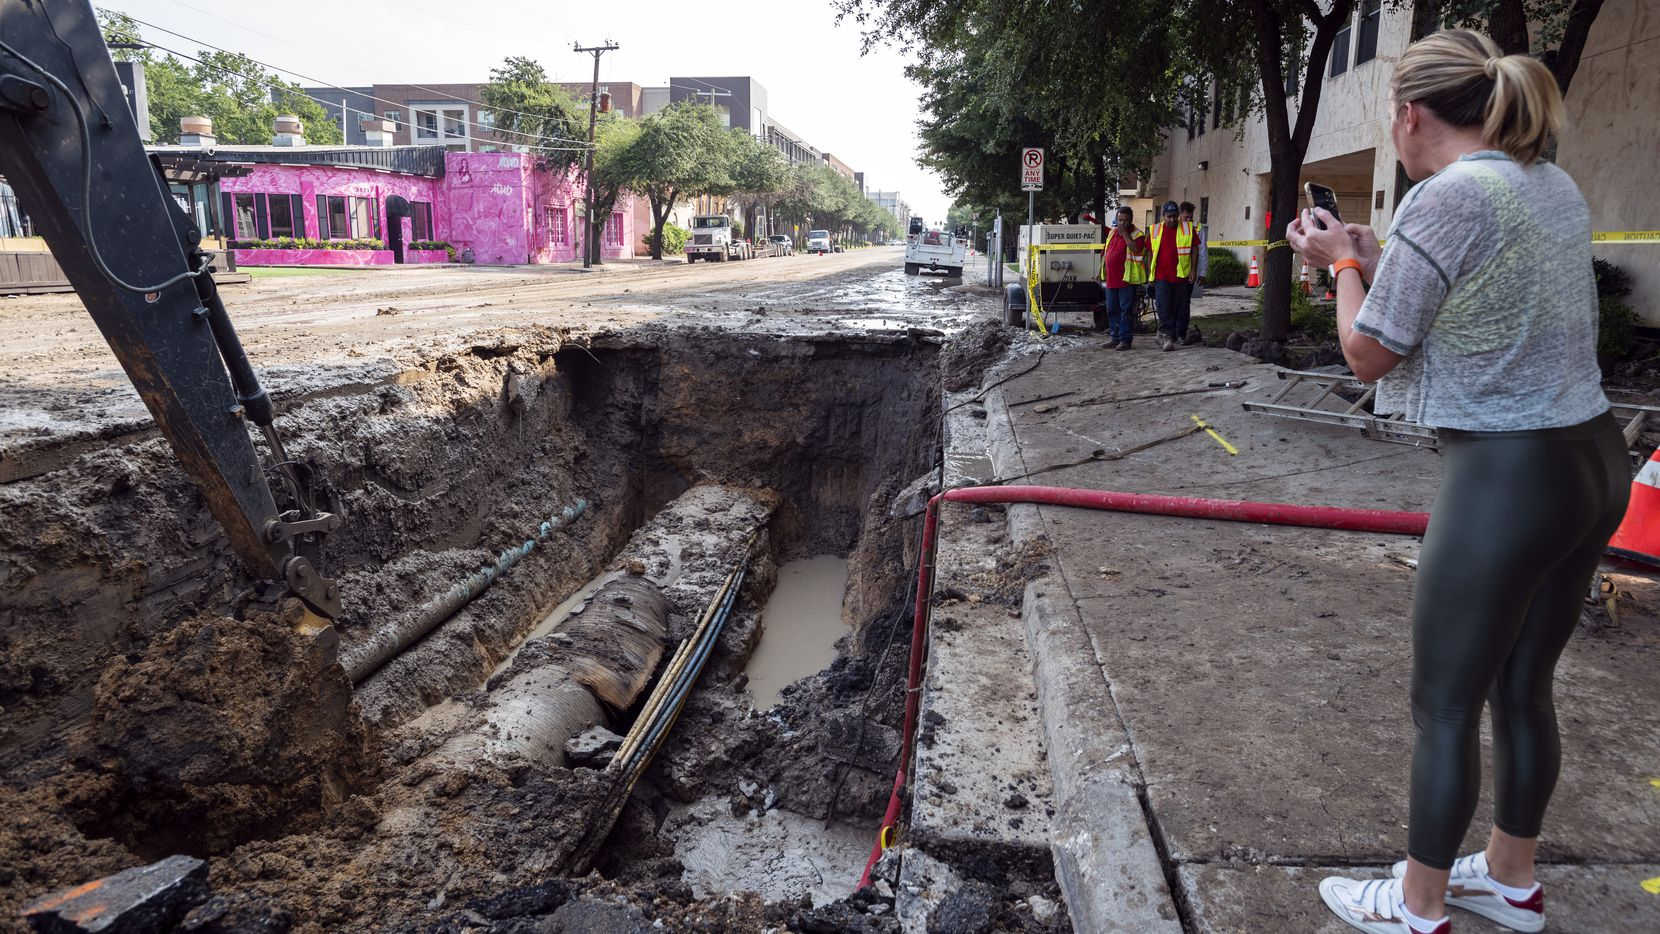 An astonished Carolyn Carmichael photographs the busted water main pipe Thursday, Aug. 5, 2021.